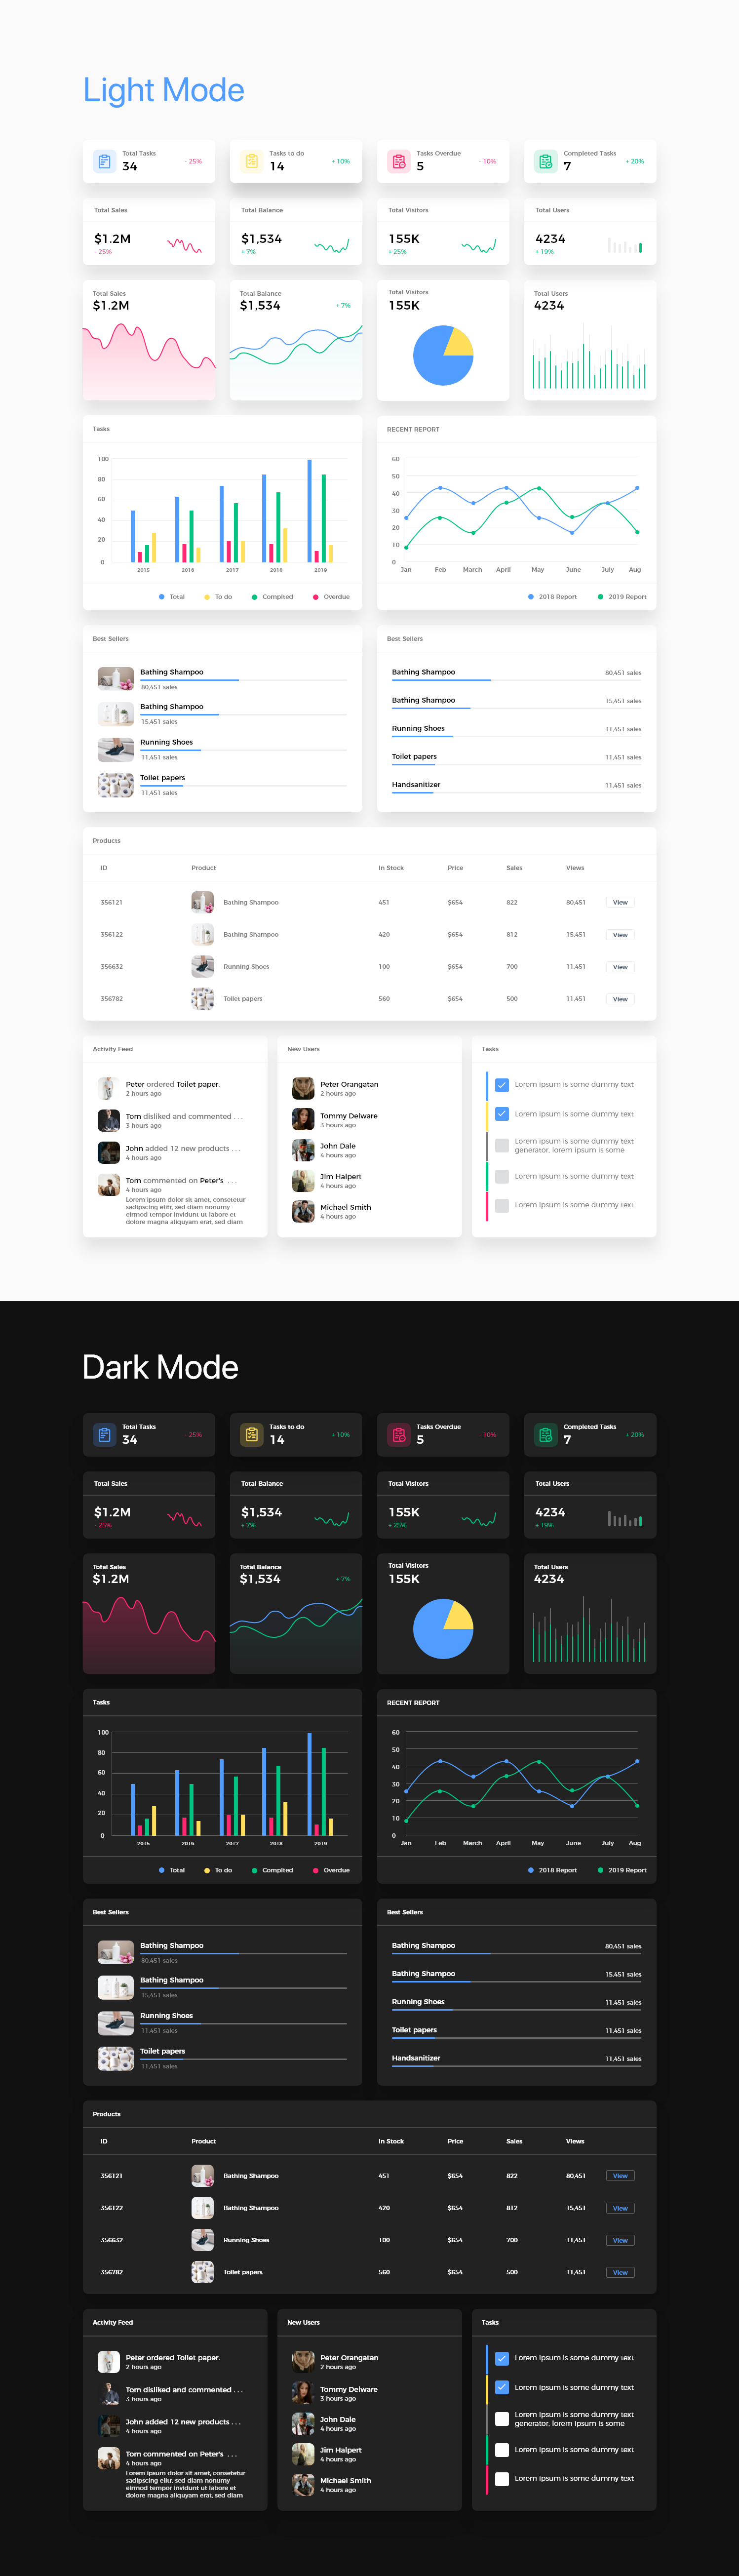 Dashboard Free UI Kit - Minimal and clean dashboard design. Easy scaling & editing, modern & clean look. Dark mode!